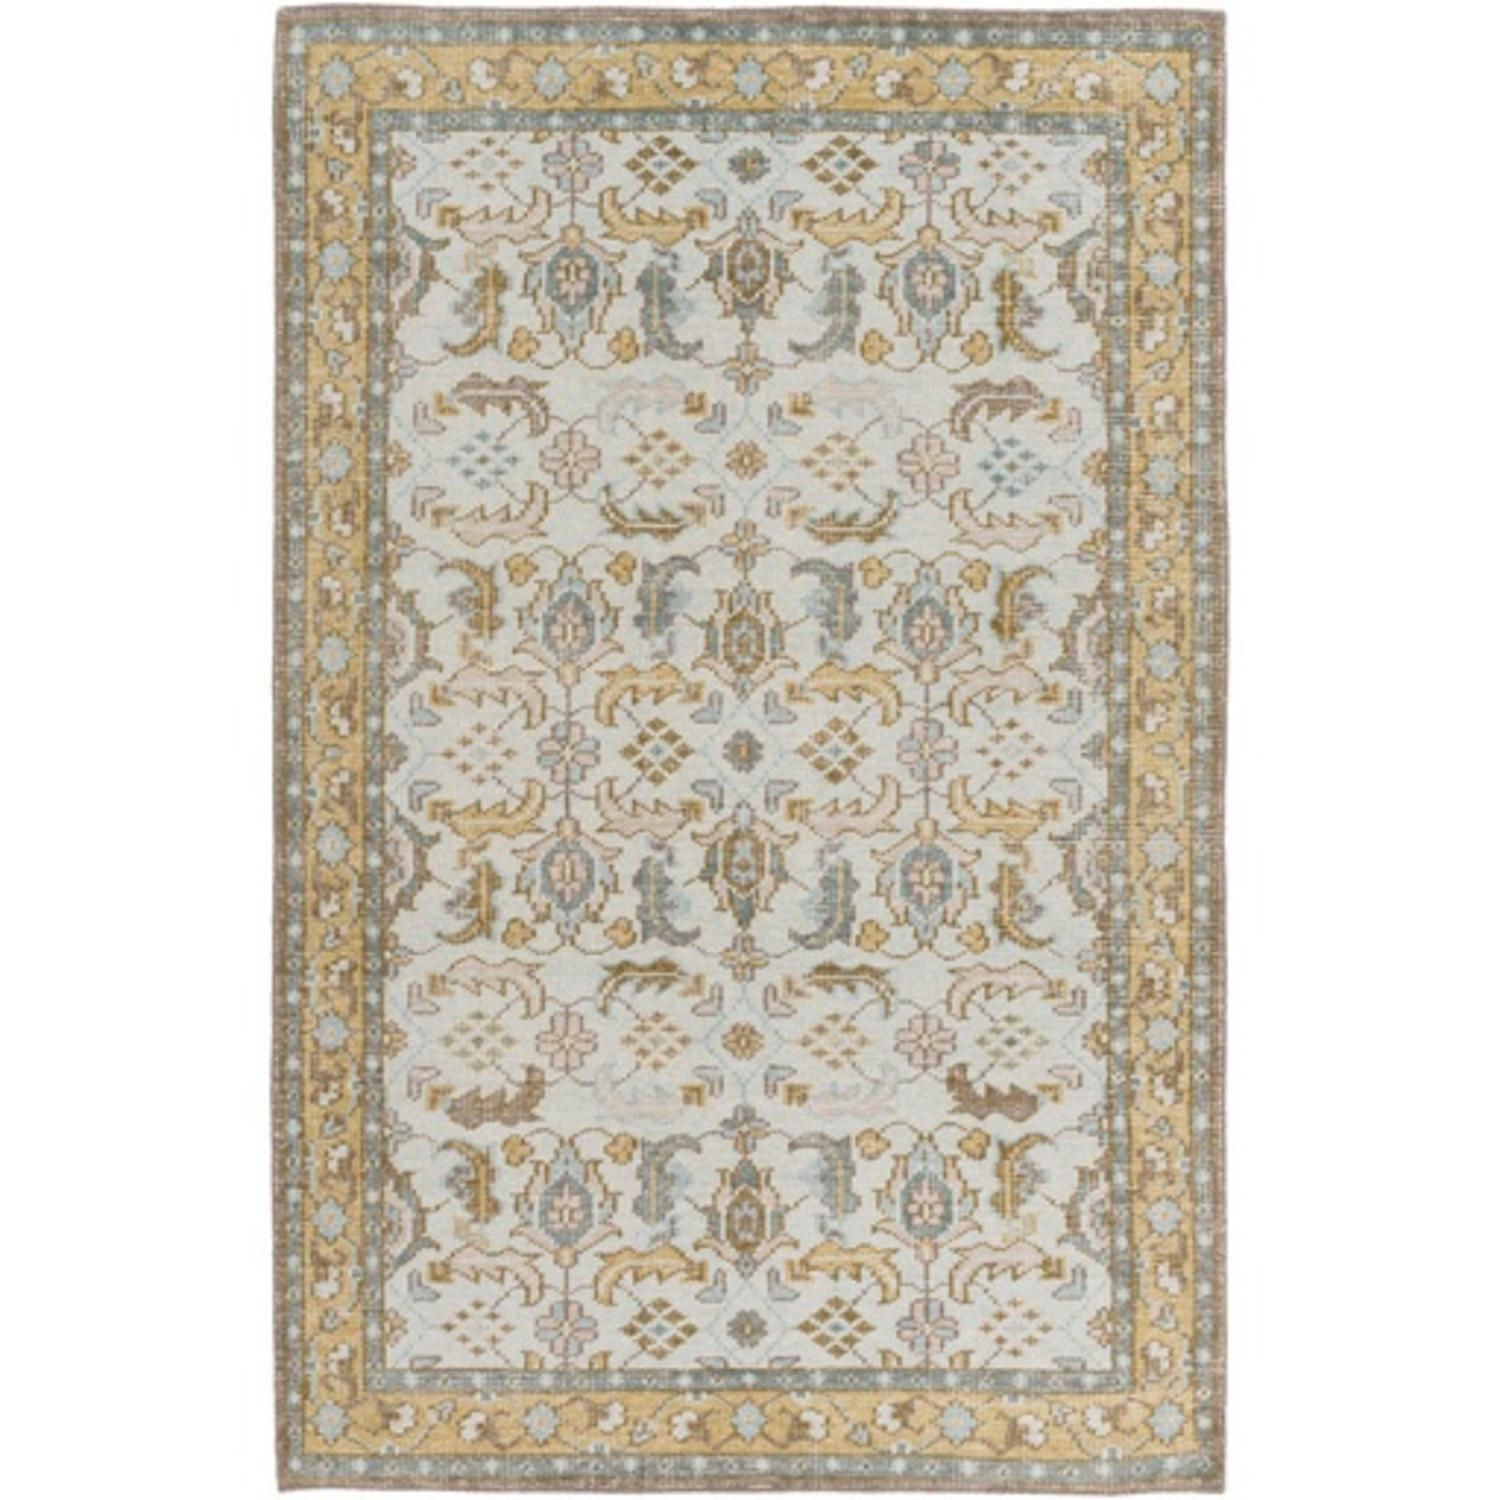 8' x 11' Profound Perception Buttercup Yellow and Sandy Beige Wool Area Throw Rug